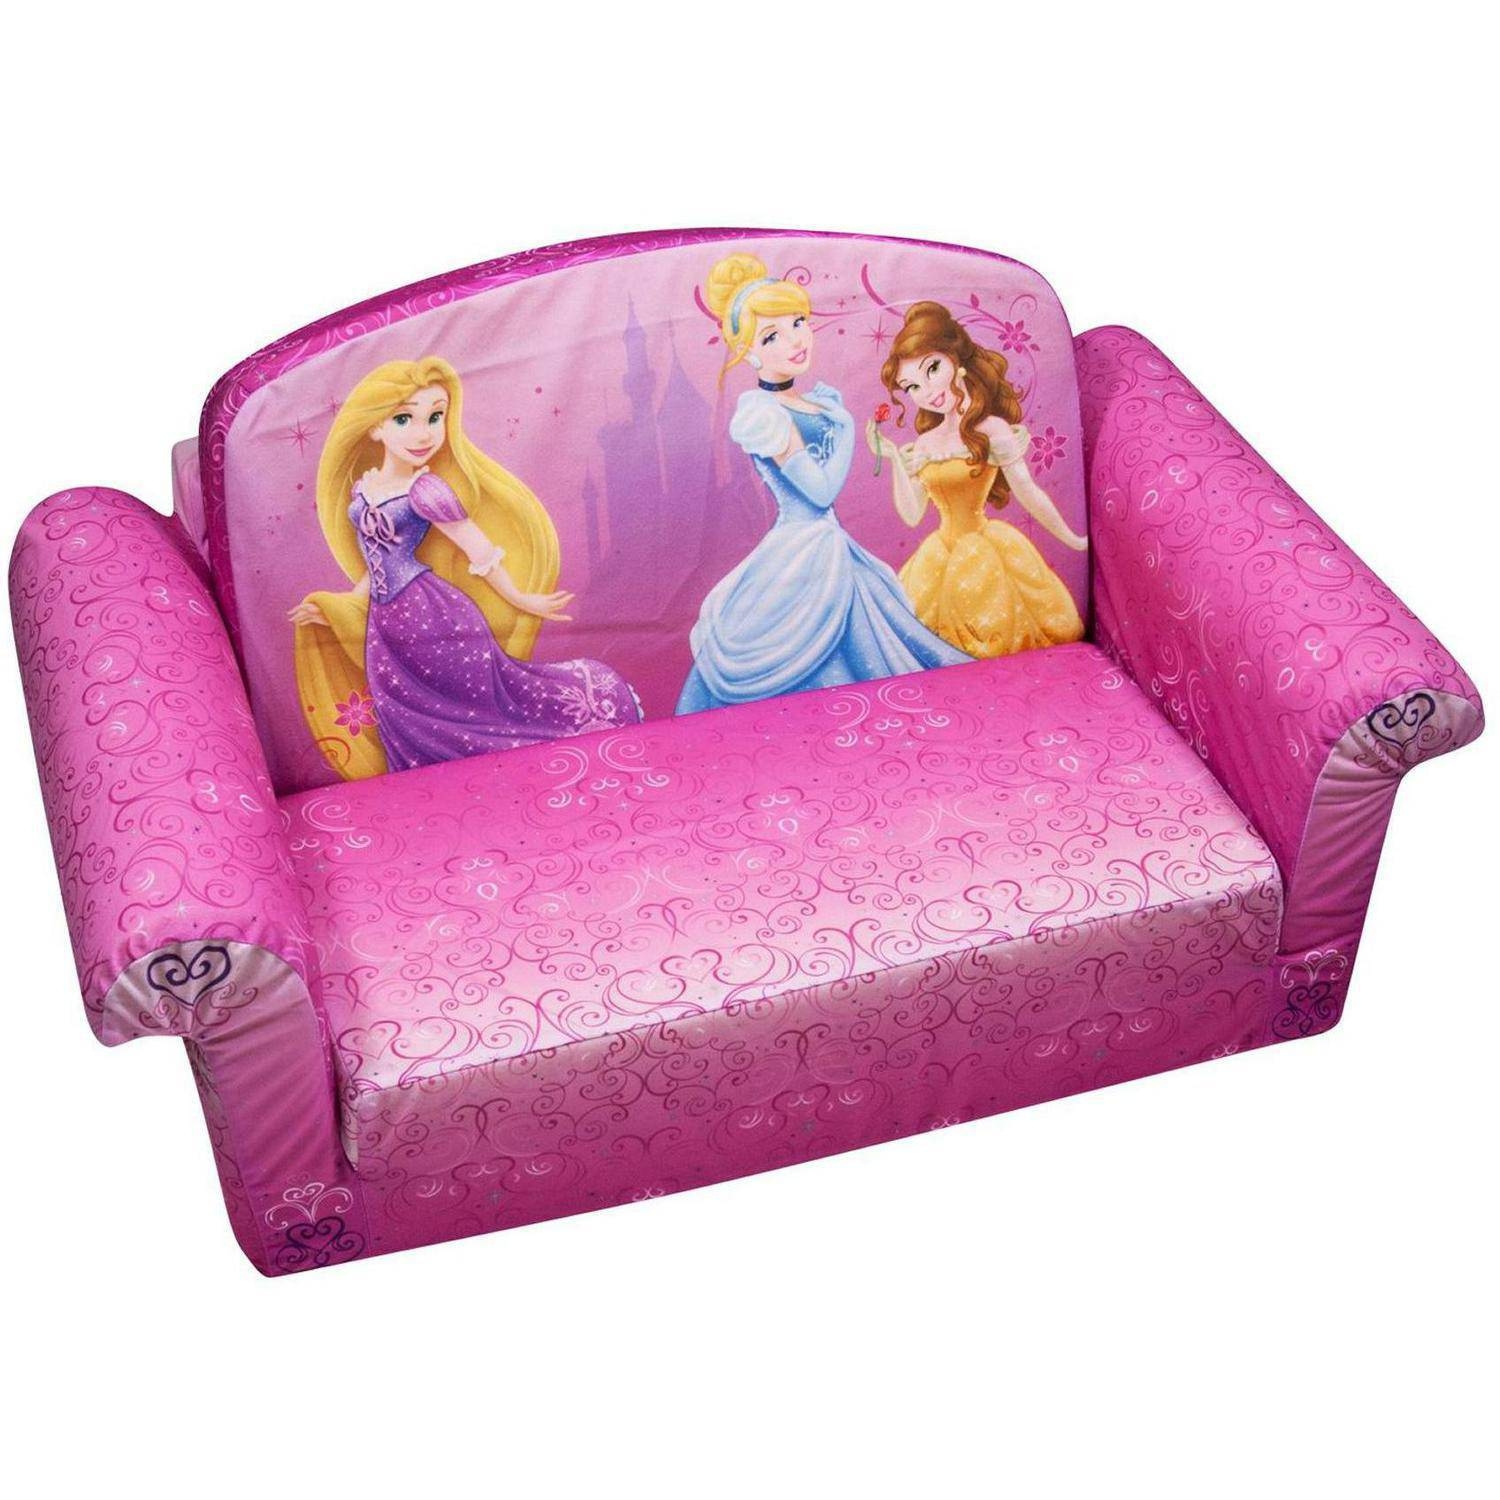 Marshmallow 2-In-1 Flip Open Sofa, Disney Princess - Walmart for Princess Flip Open Sofas (Image 4 of 15)